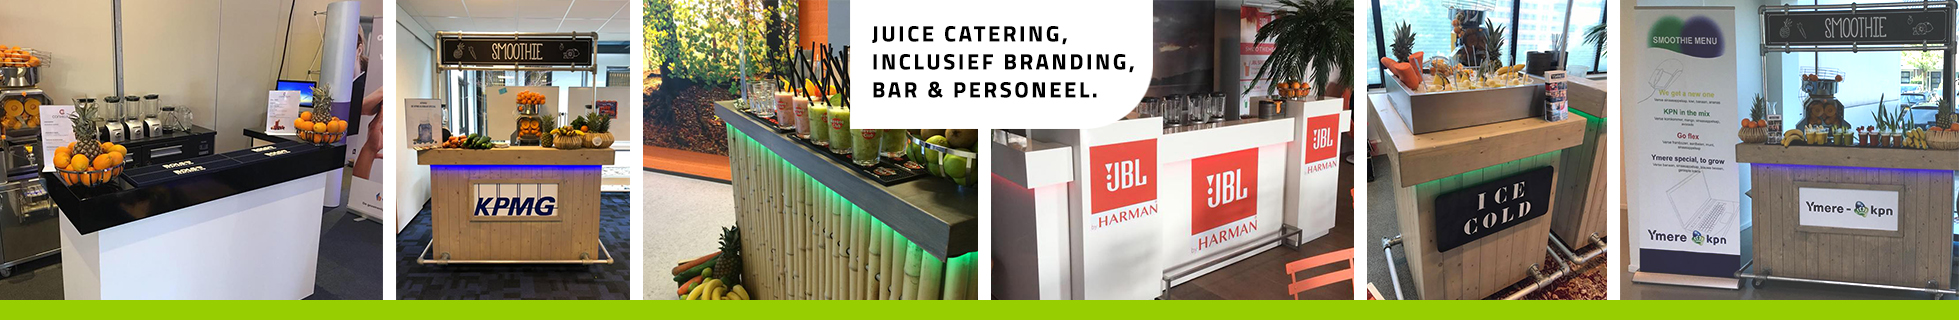 Juice catering